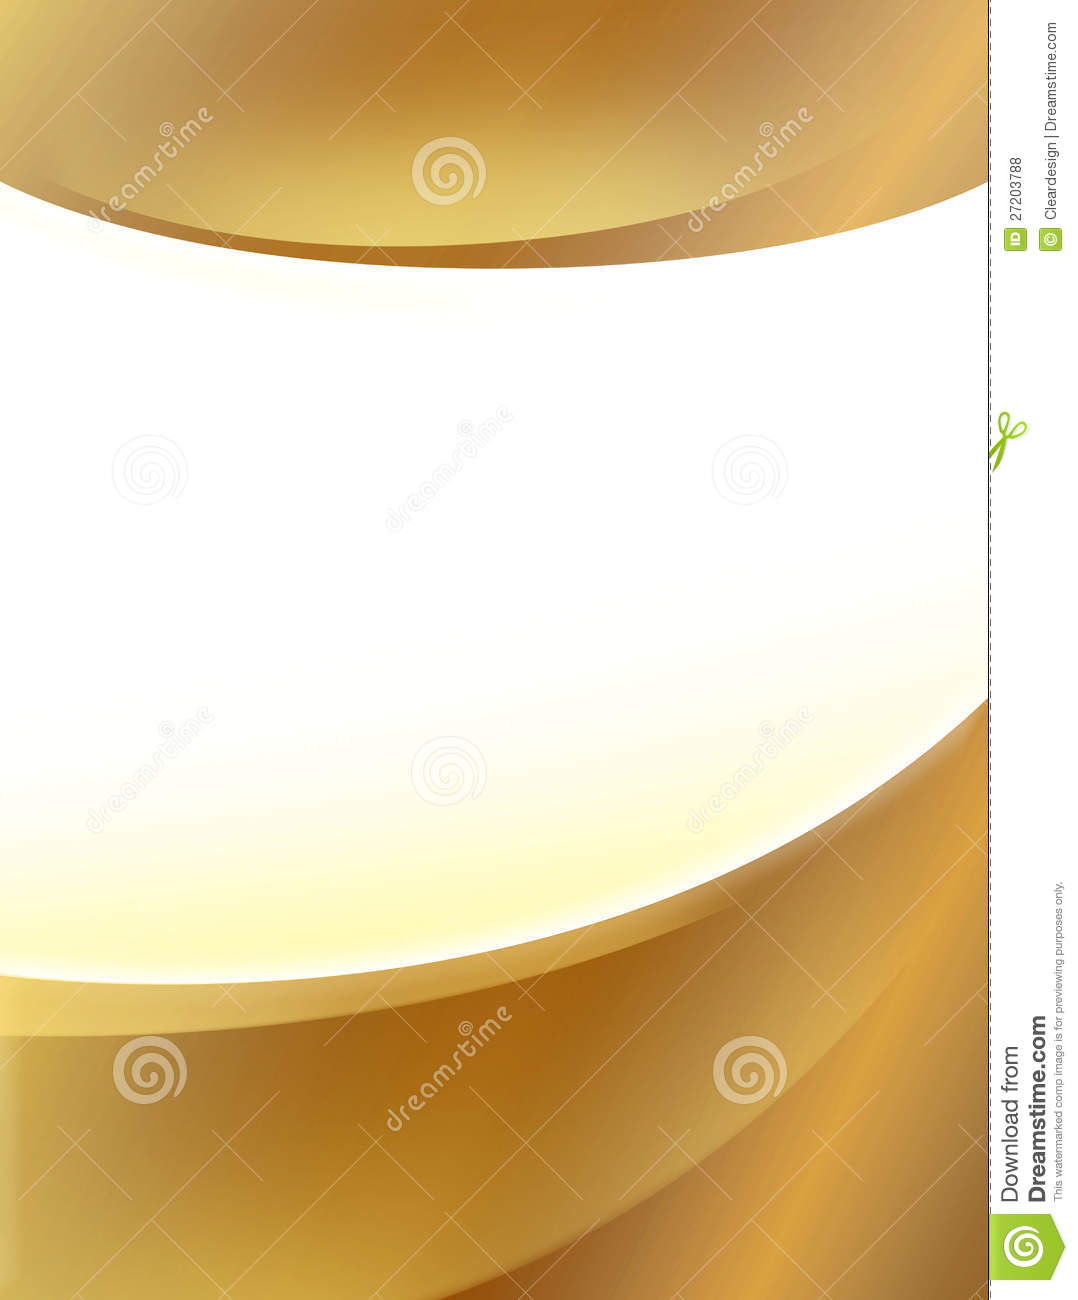 Gold Poster Background Royalty Free Stock Photos Image